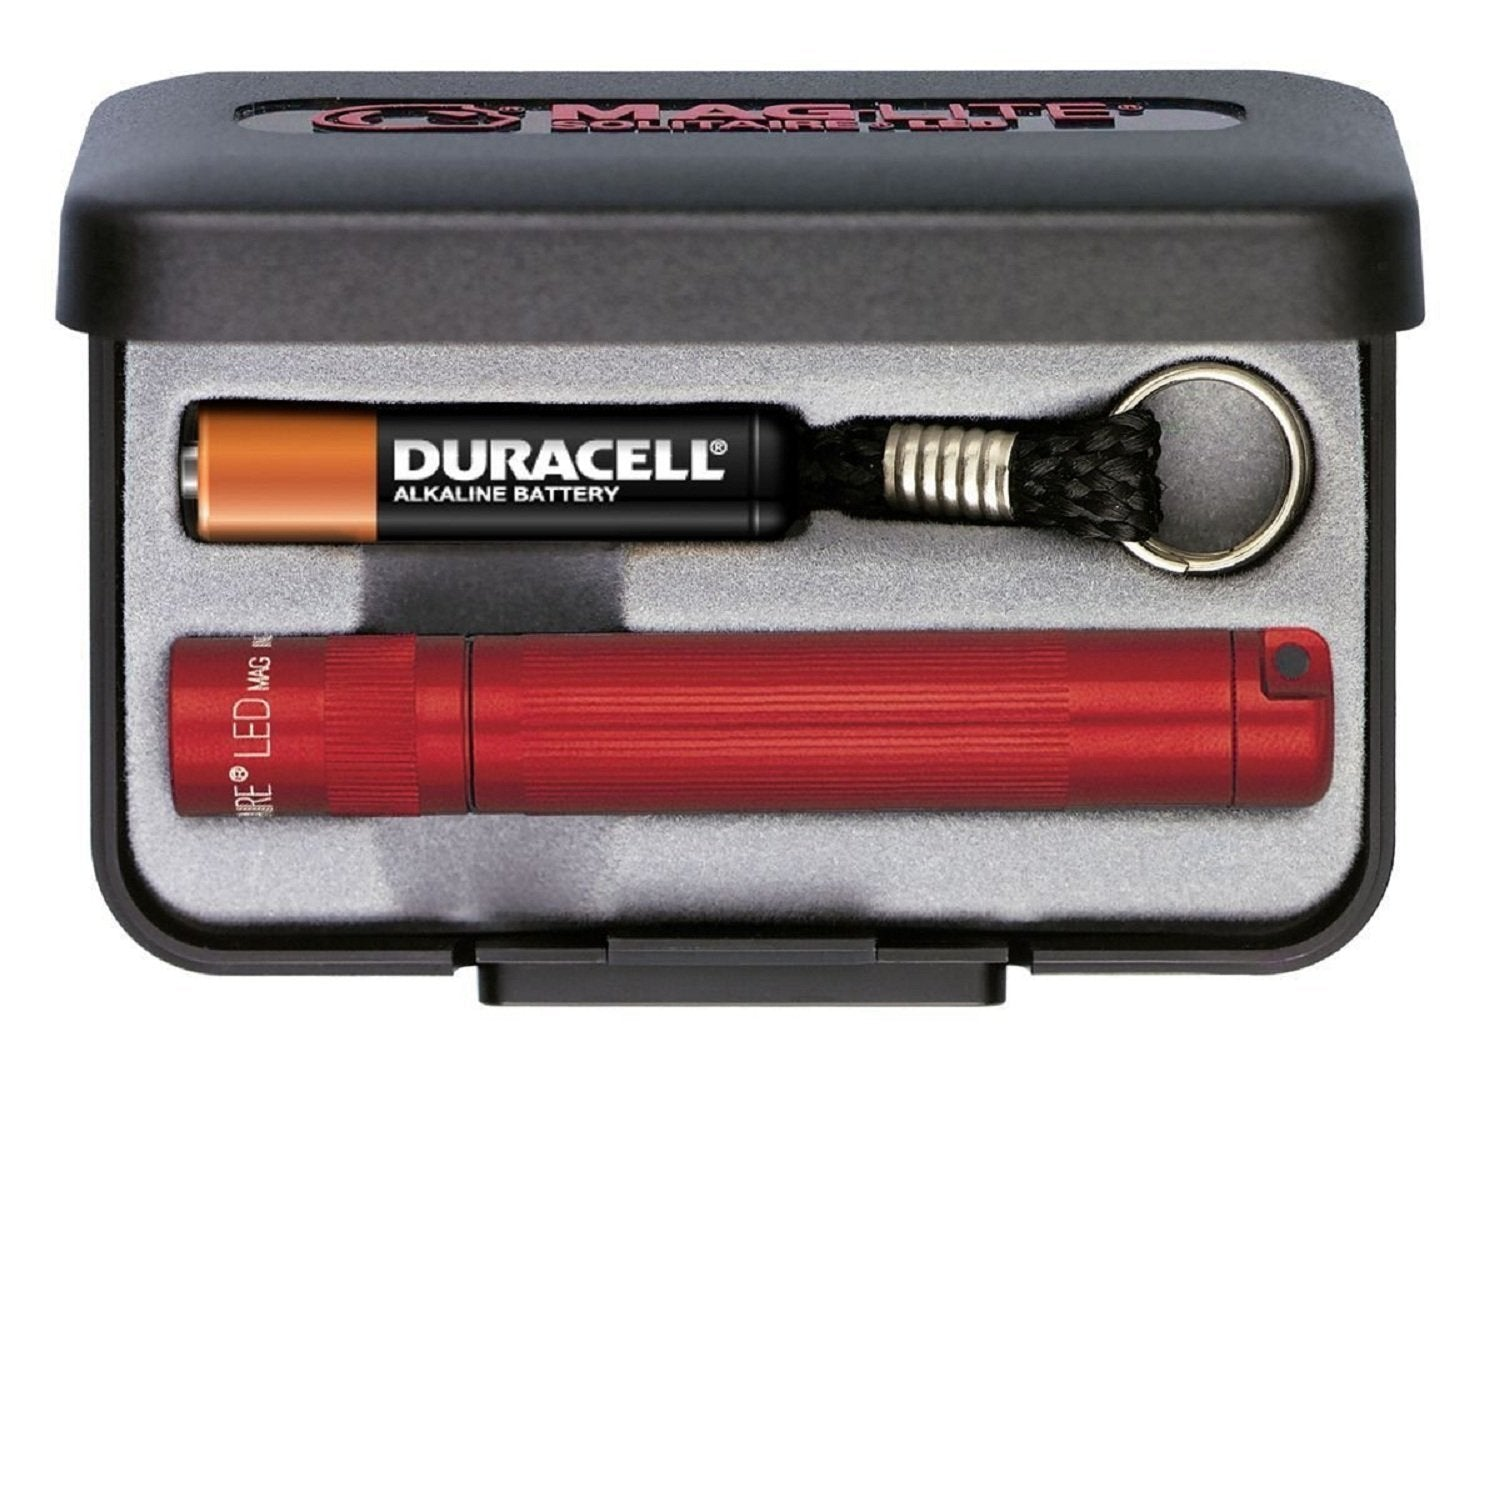 MagLite Solitaire LED AAA Flashlight Presentation Box Red Tactical Gear Australia Supplier Distributor Dealer